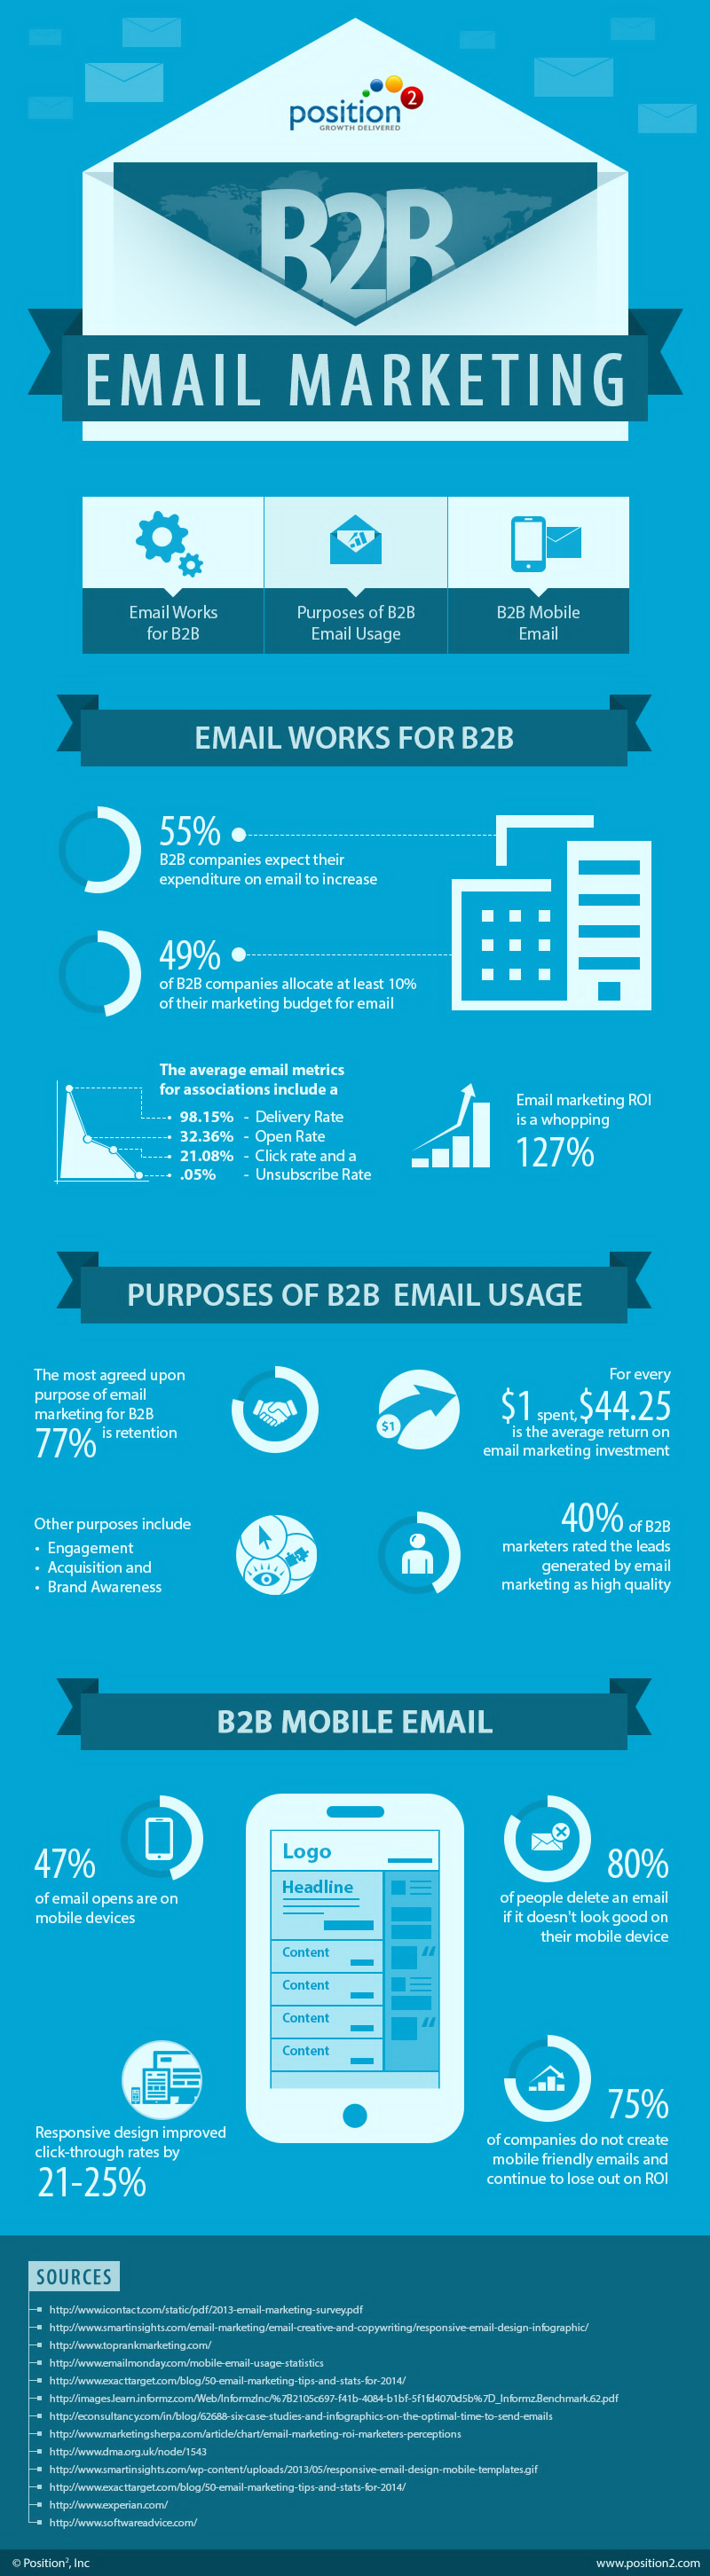 Revealed: Proof That B2B Email Marketing Actually Works image Infographic B2B Email Marketing